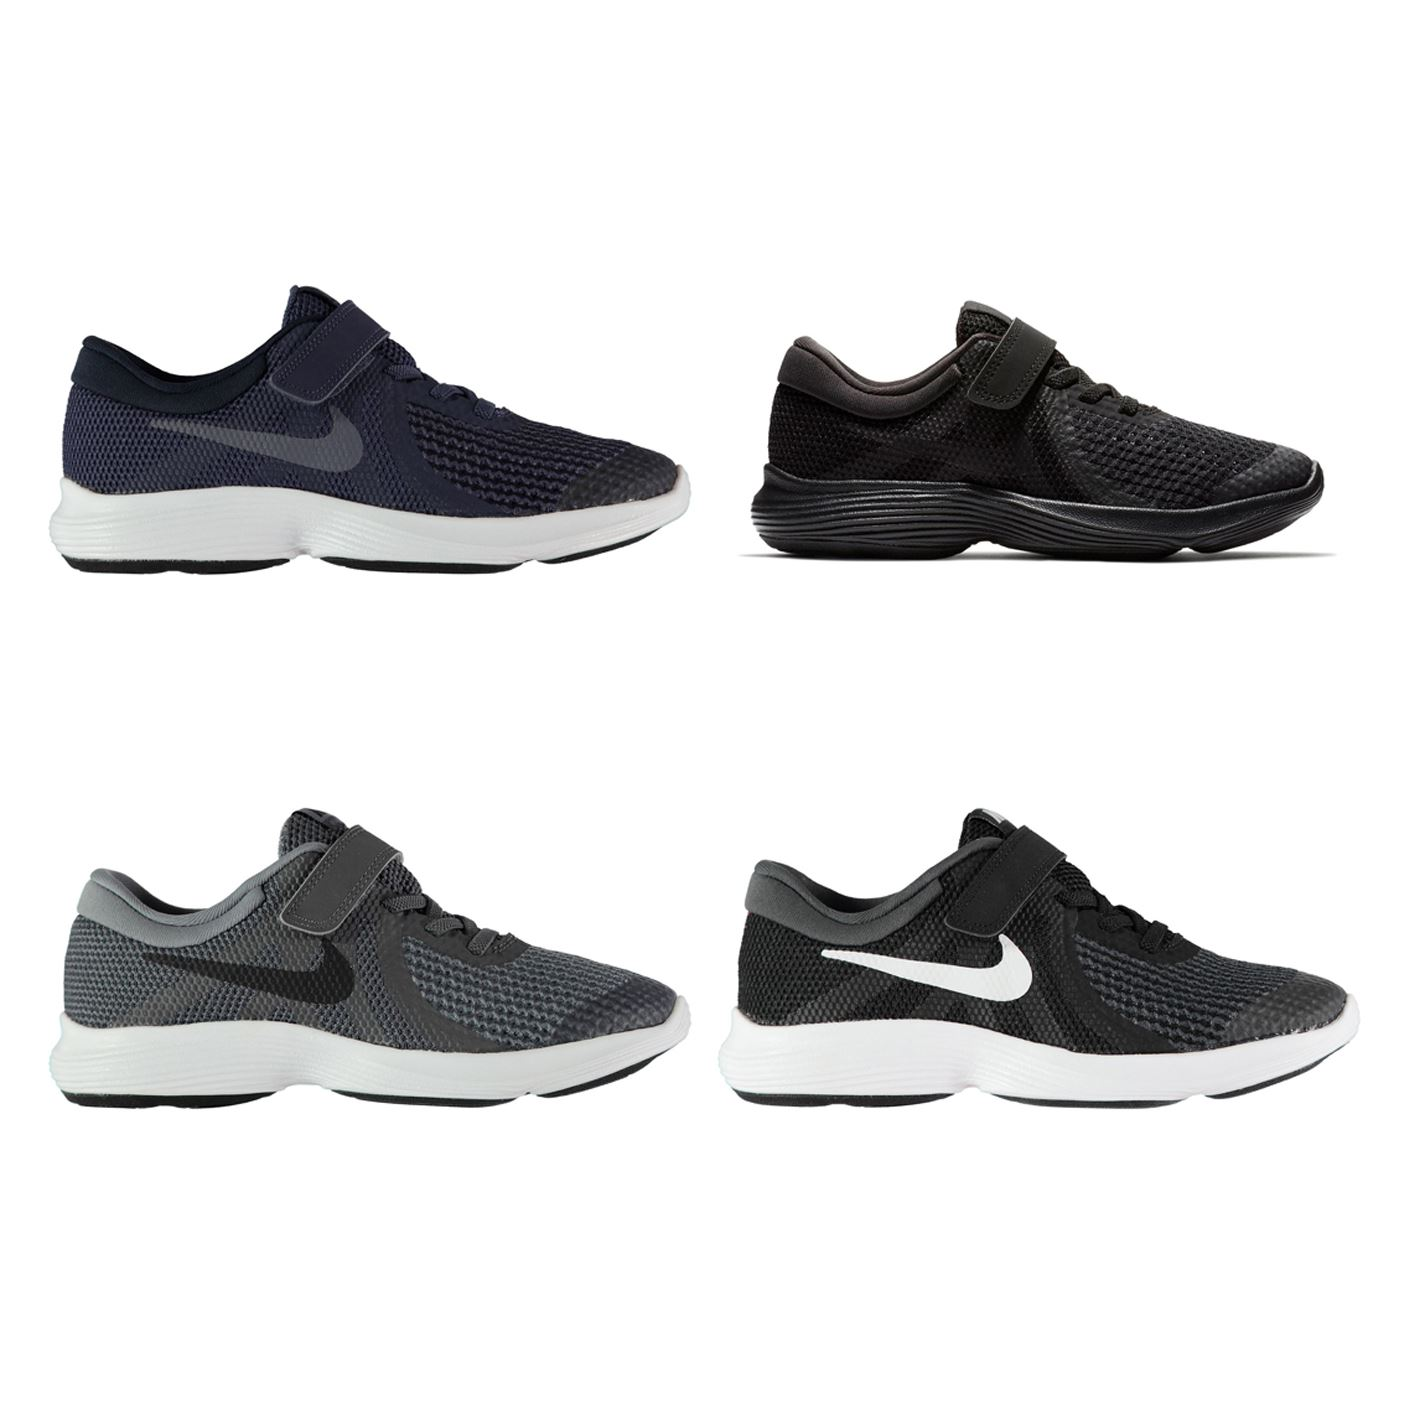 new style a97d2 20847 Details about Nike Revolution 4 Child Boys Trainers Shoes Footwear